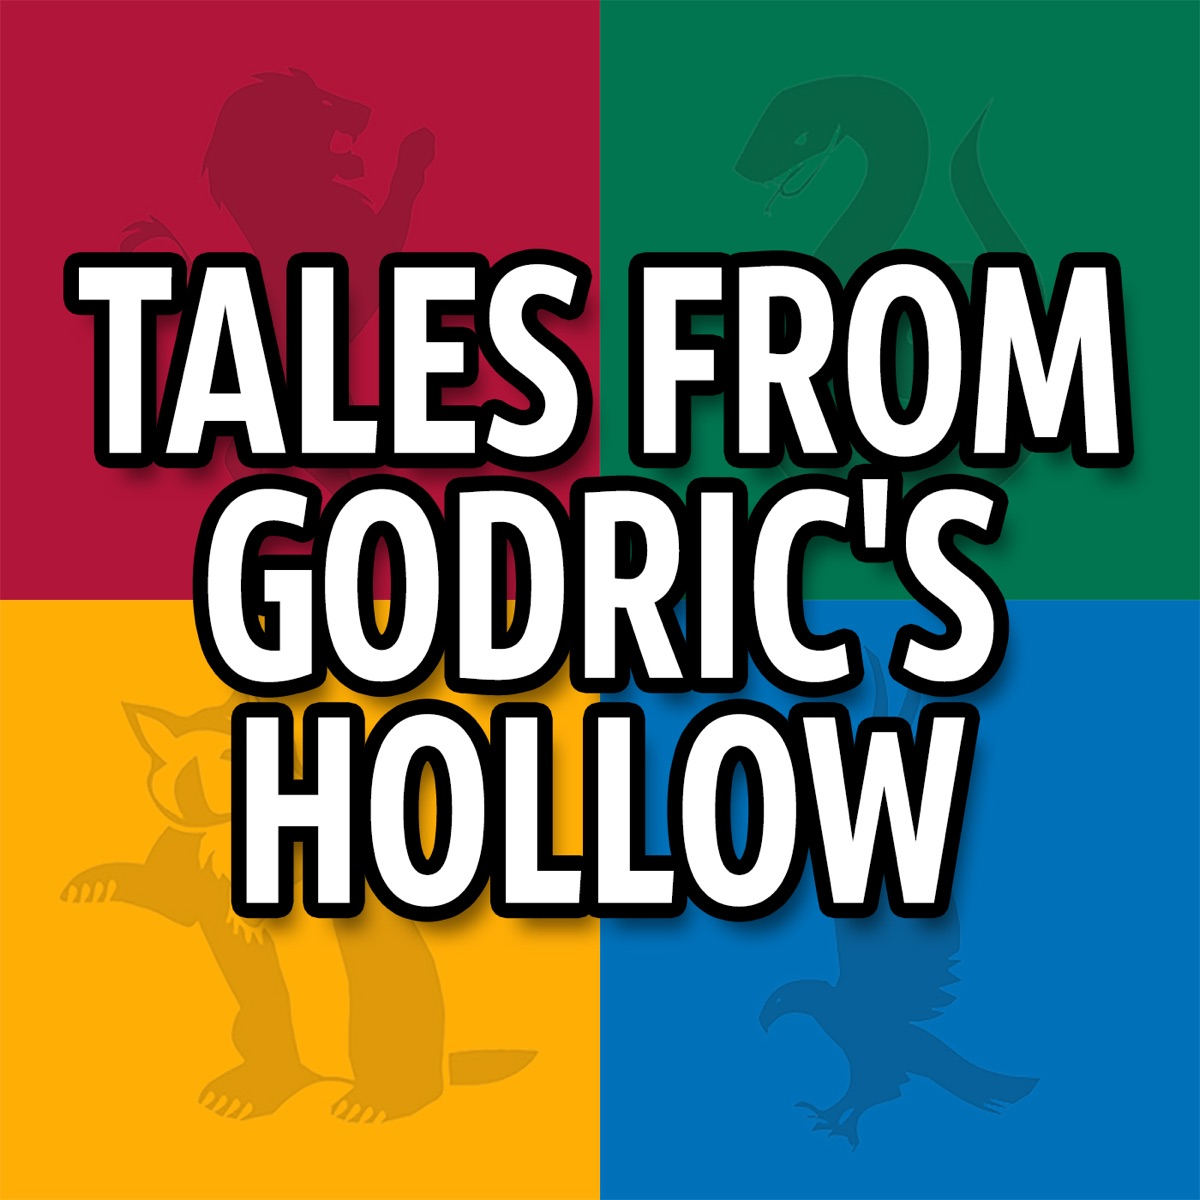 Tales from Godric's Hollow - Discussing Harry Potter Books, Movies, and News